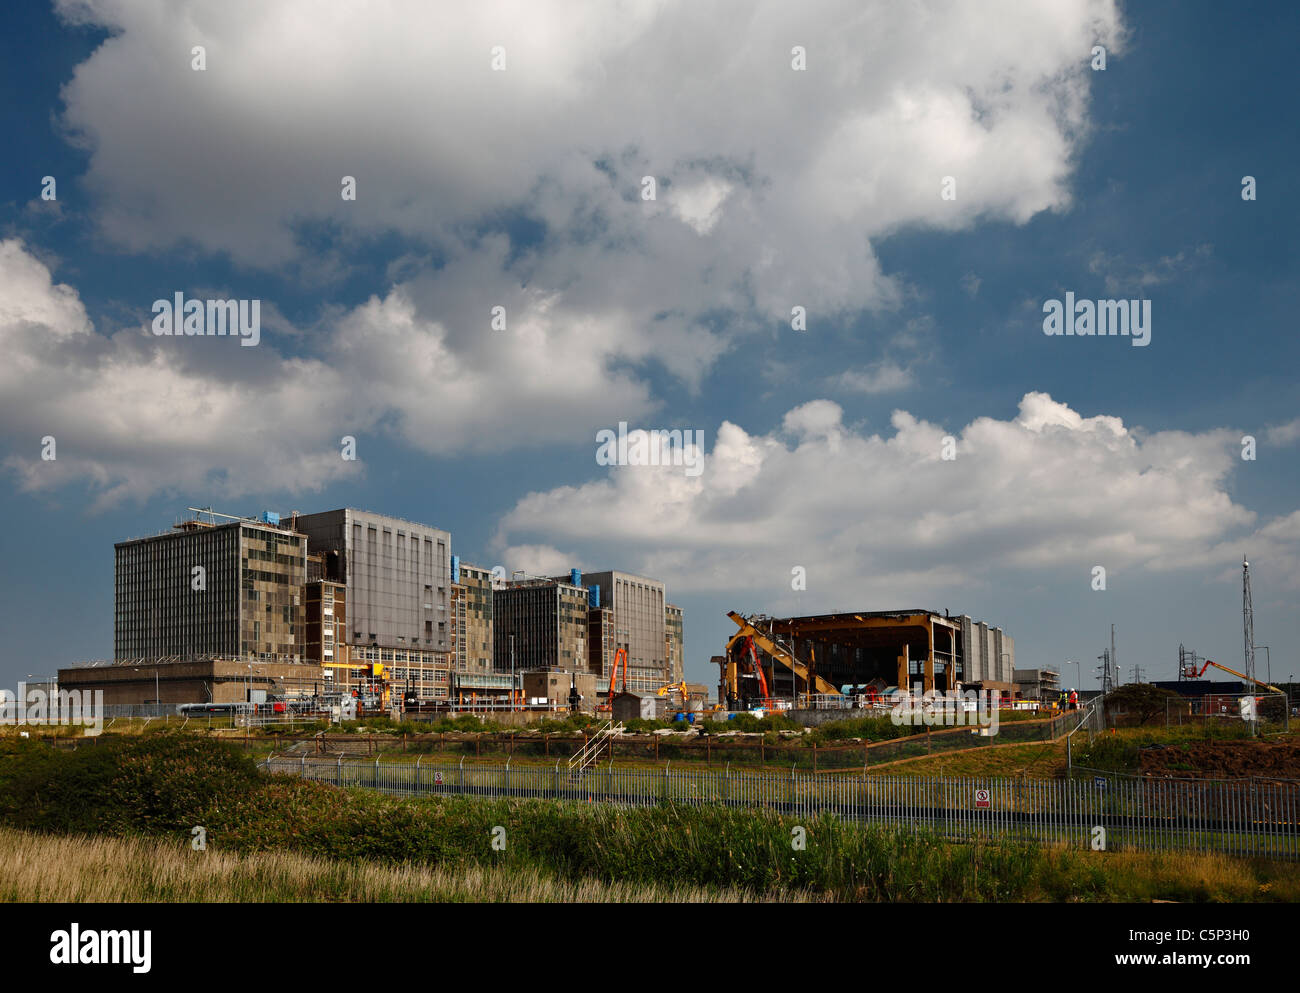 Bradwell nuclear power station, being decommissioned, and partly demolished. - Stock Image